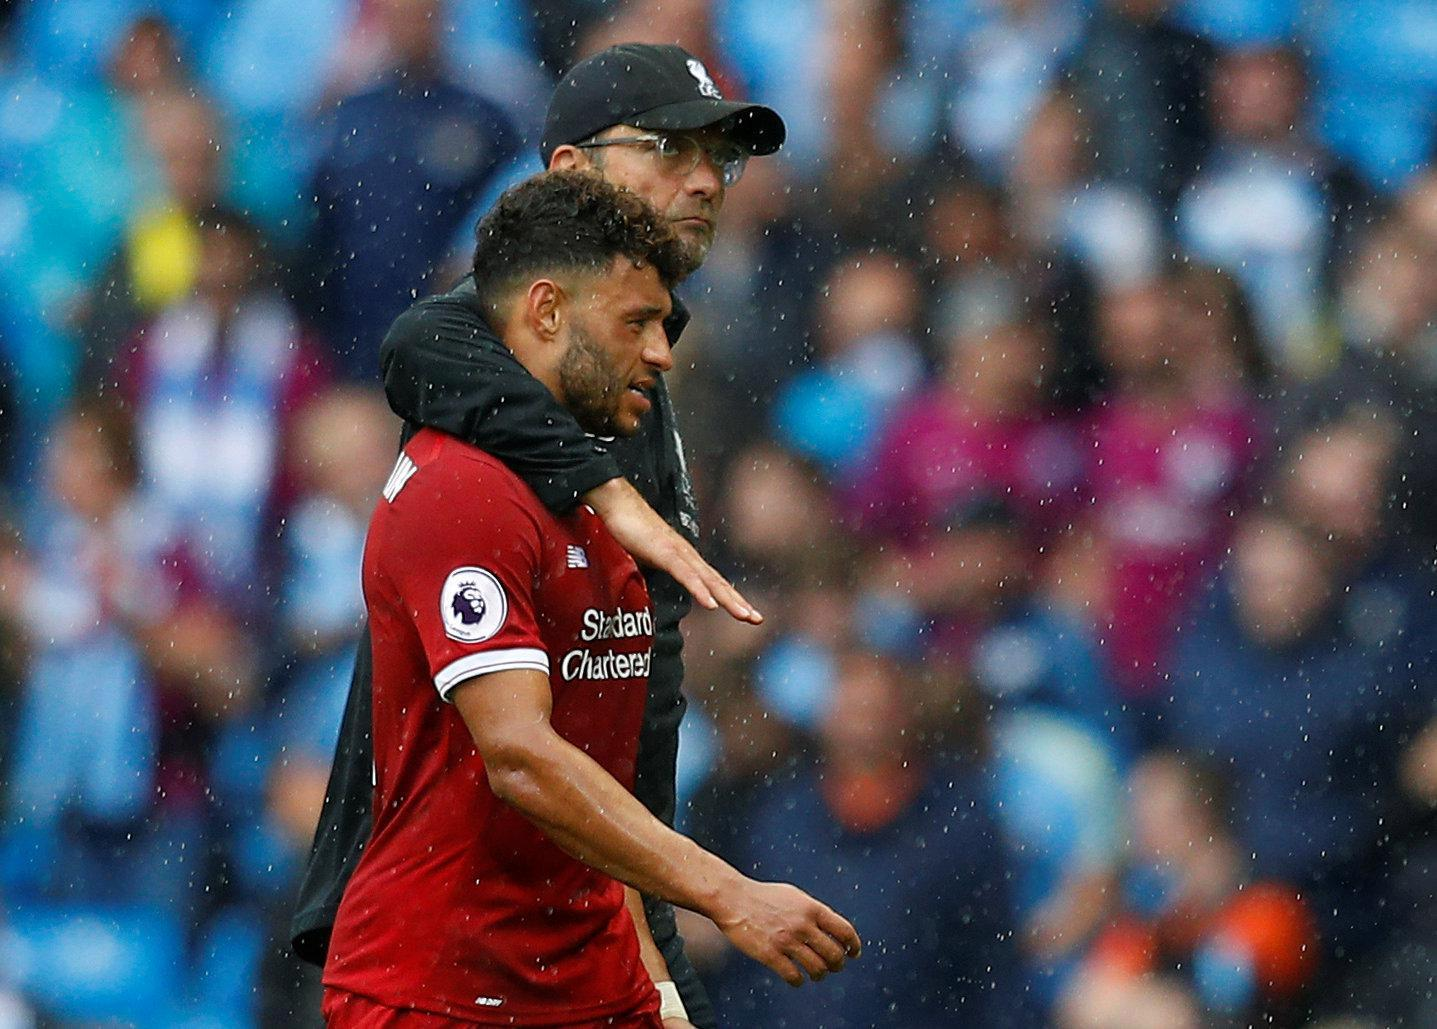 Coutinho faces new competition from the likes of Alex Oxlade-Chamberlain